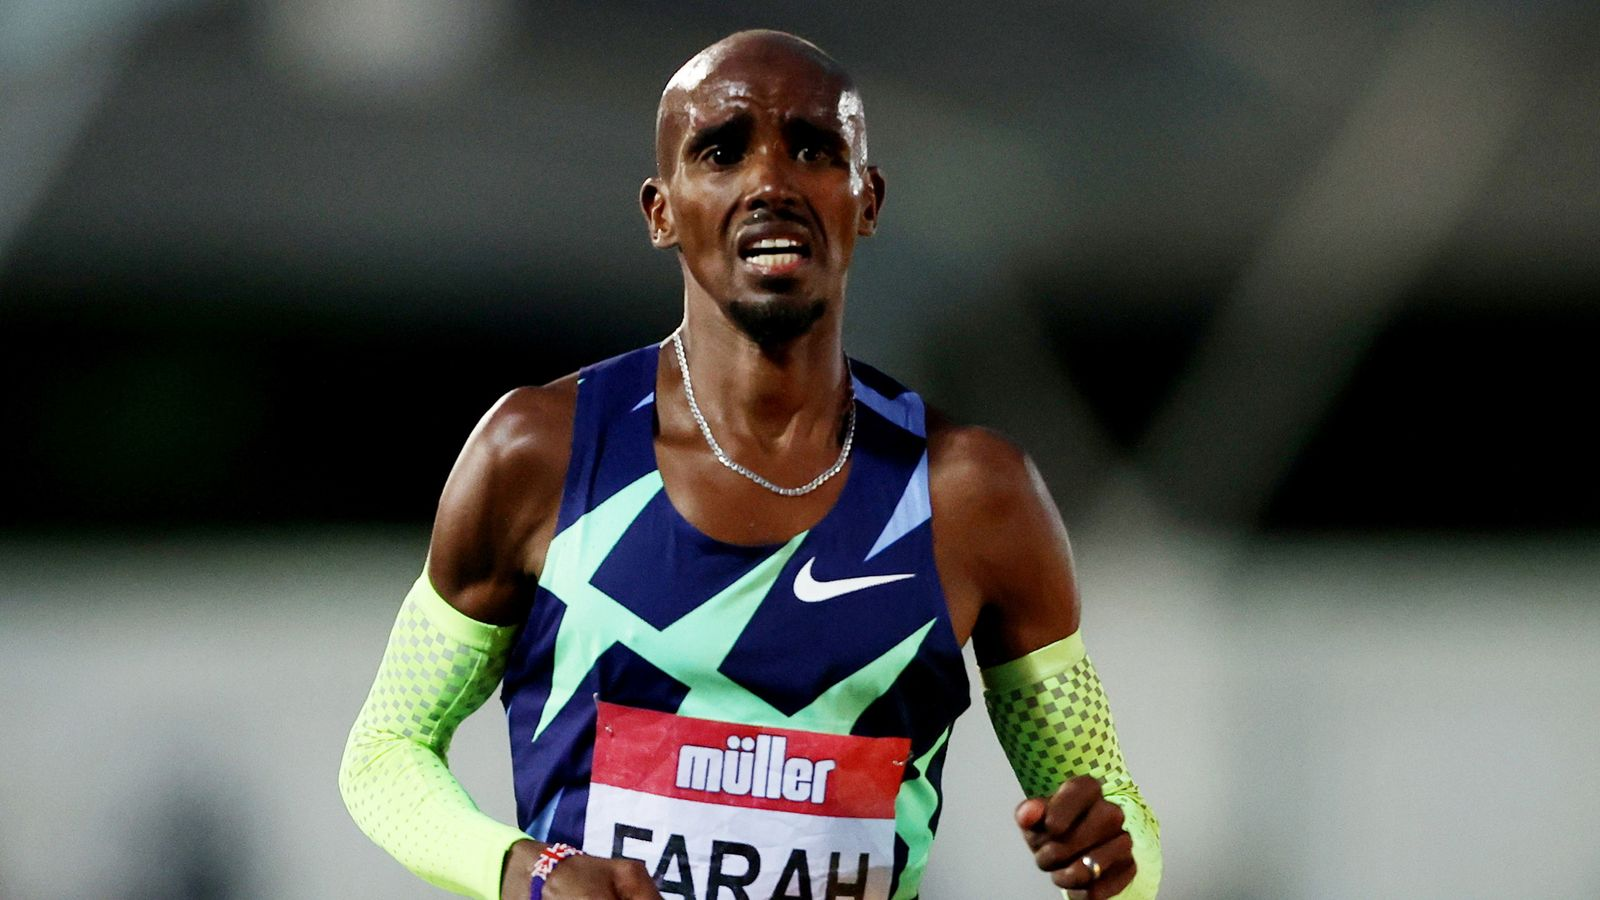 Tokyo Olympics 2021: Sir Mo Farah fails to qualify for games after missing 10,000m race time